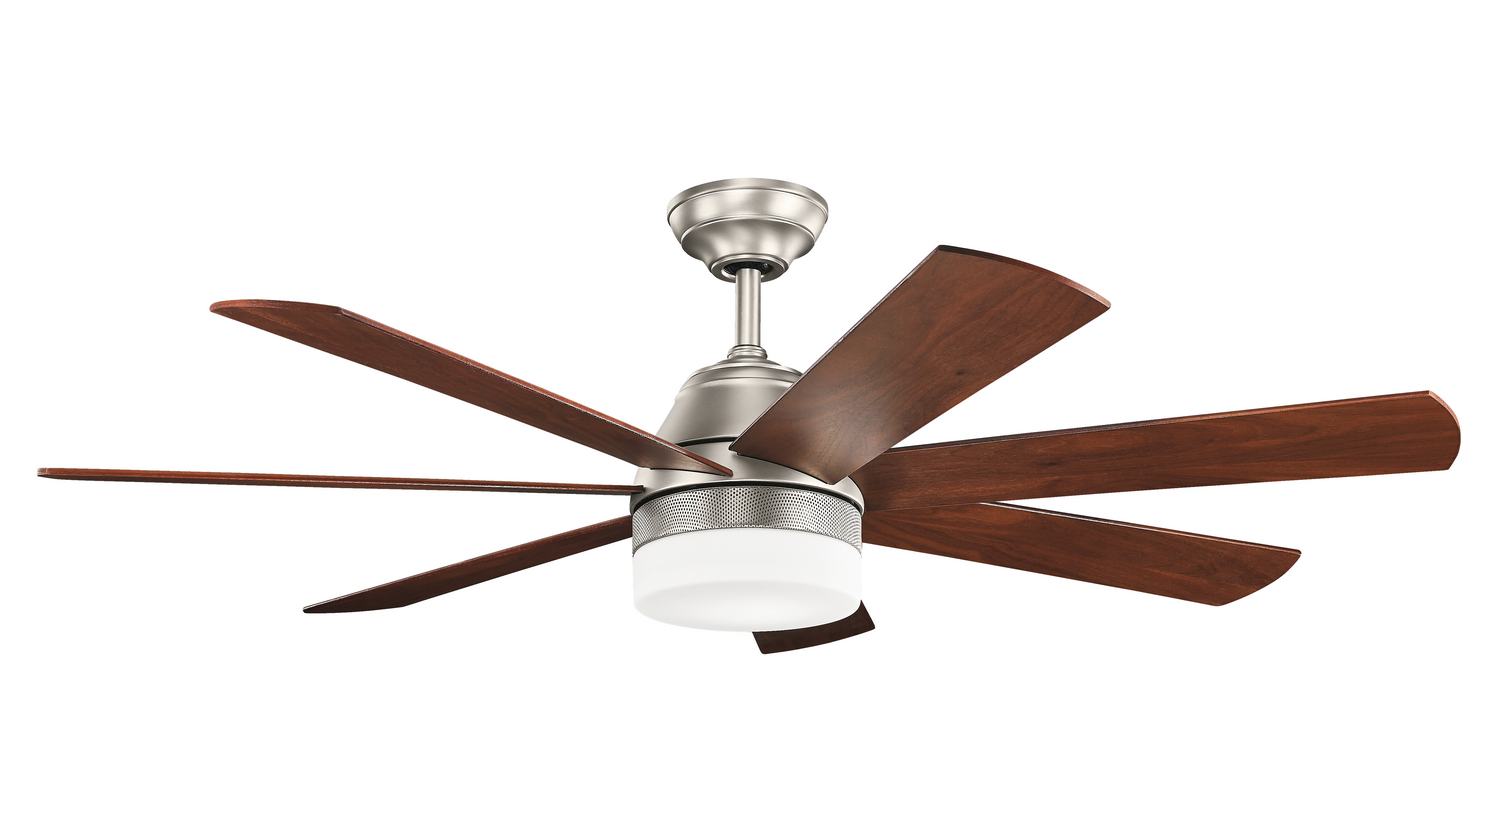 56 inchCeiling Fan from the Ellys collection by Kichler 300239NI